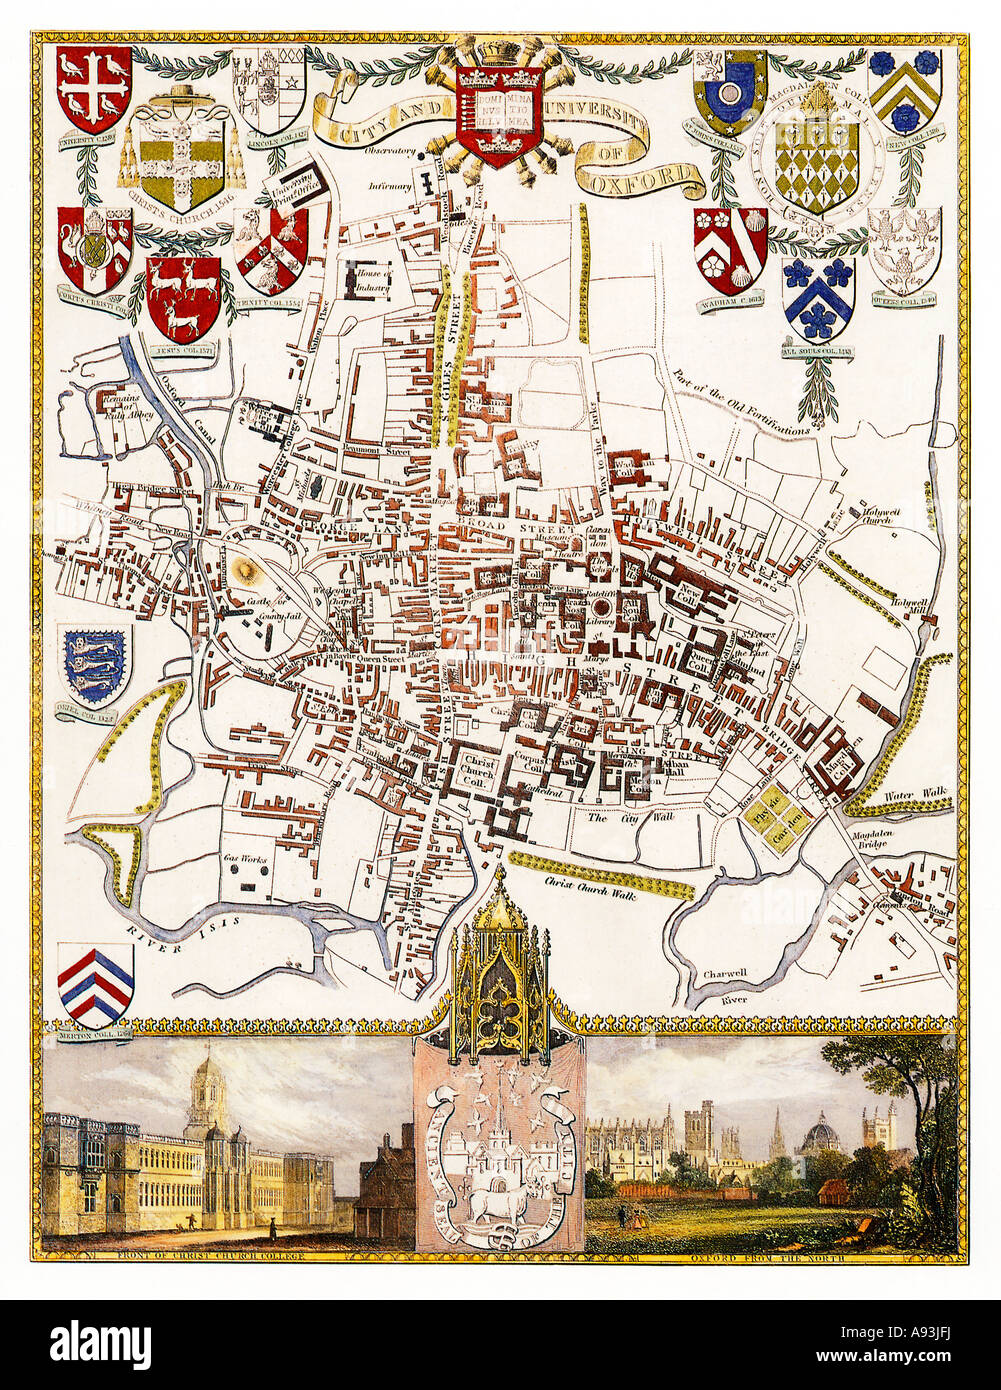 Oxford Map Victorian map of the City and University by Thomas Moule with illustrations of Christ Church and from - Stock Image